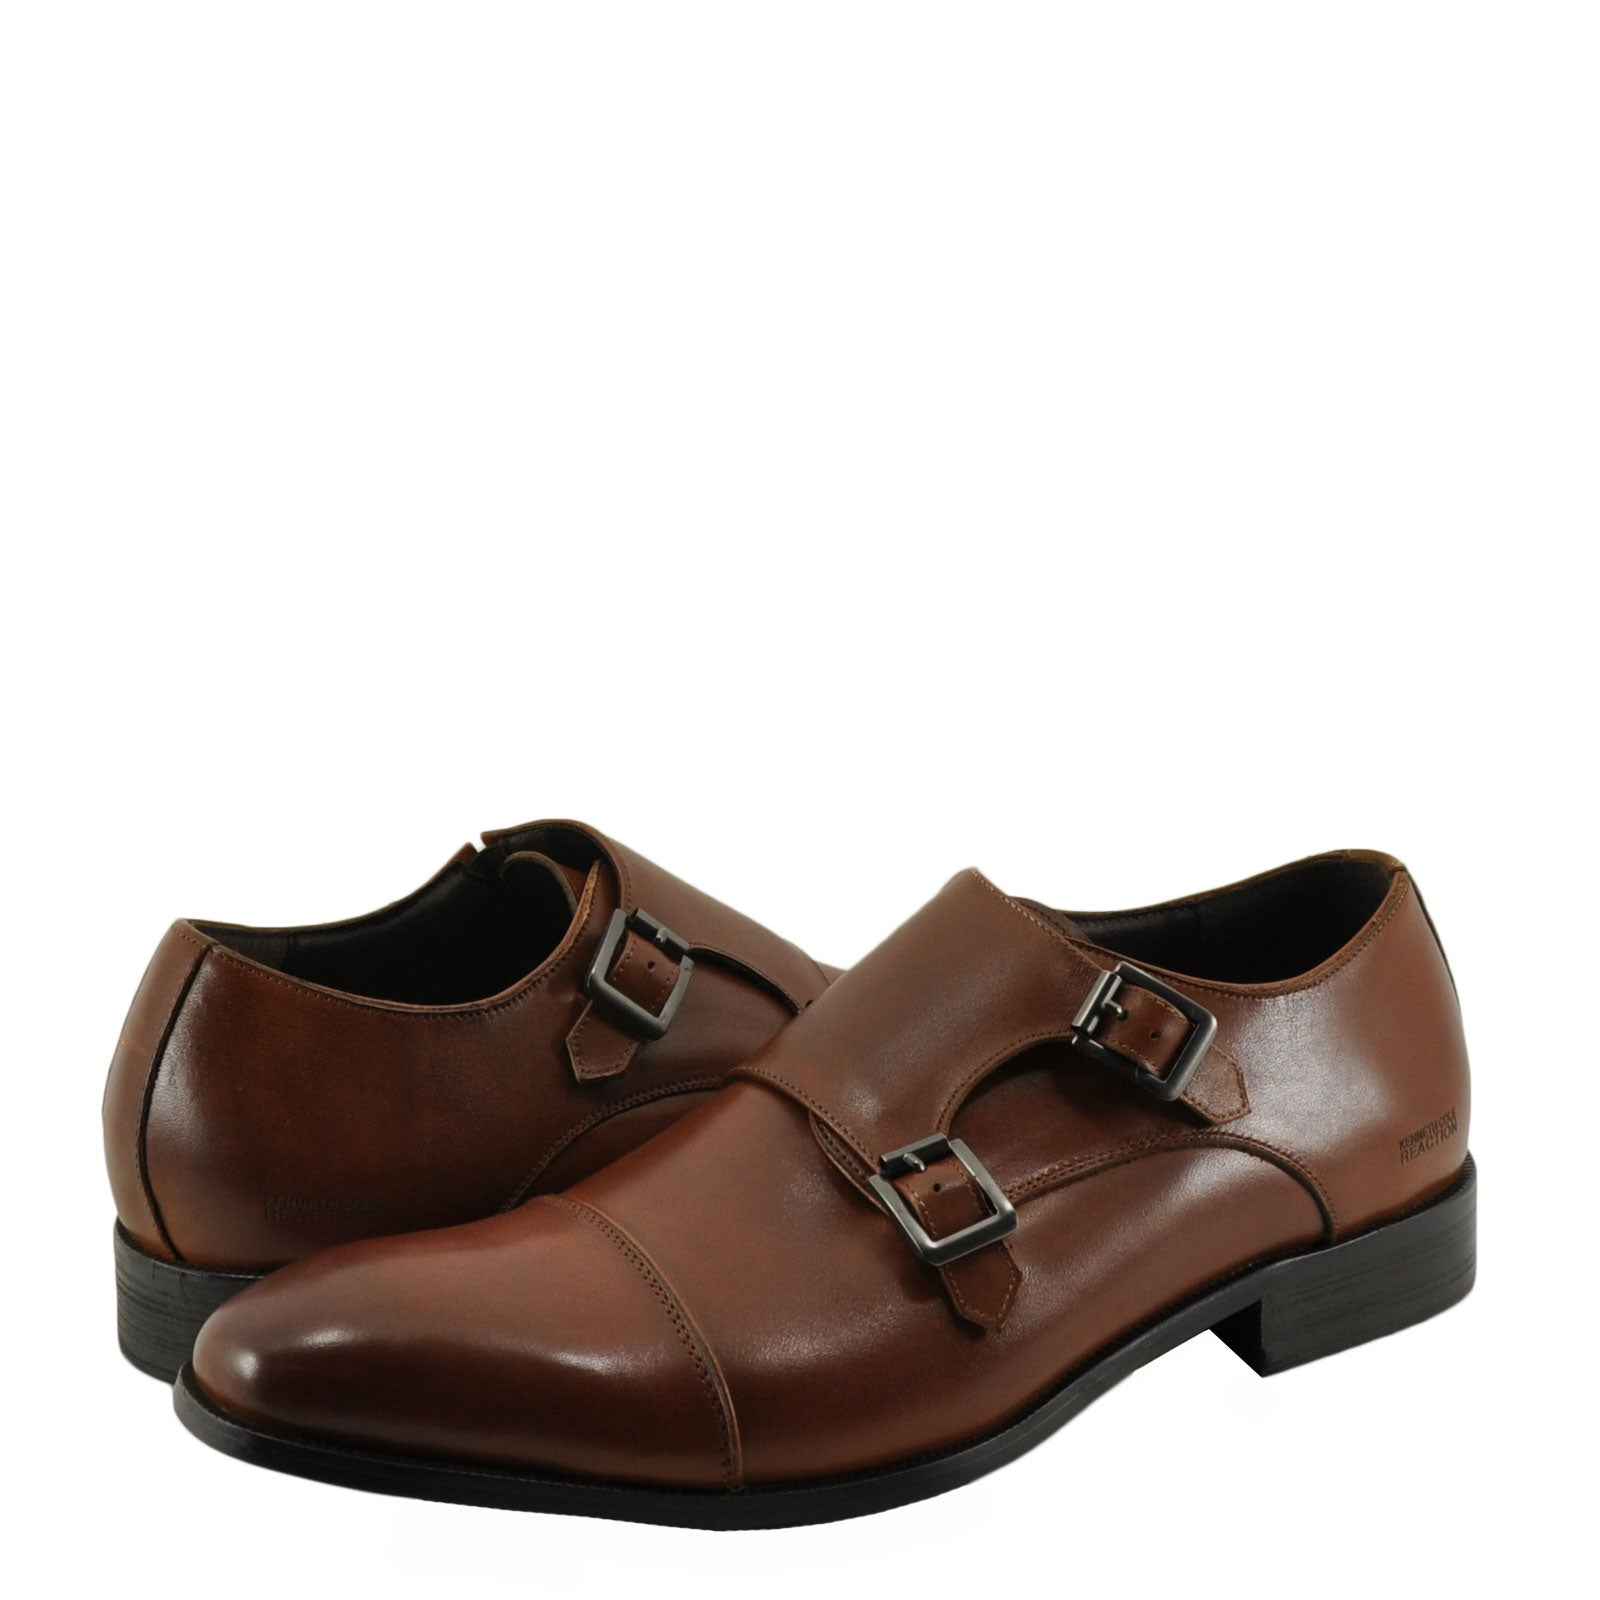 Kenneth Cole Avenue Cognac